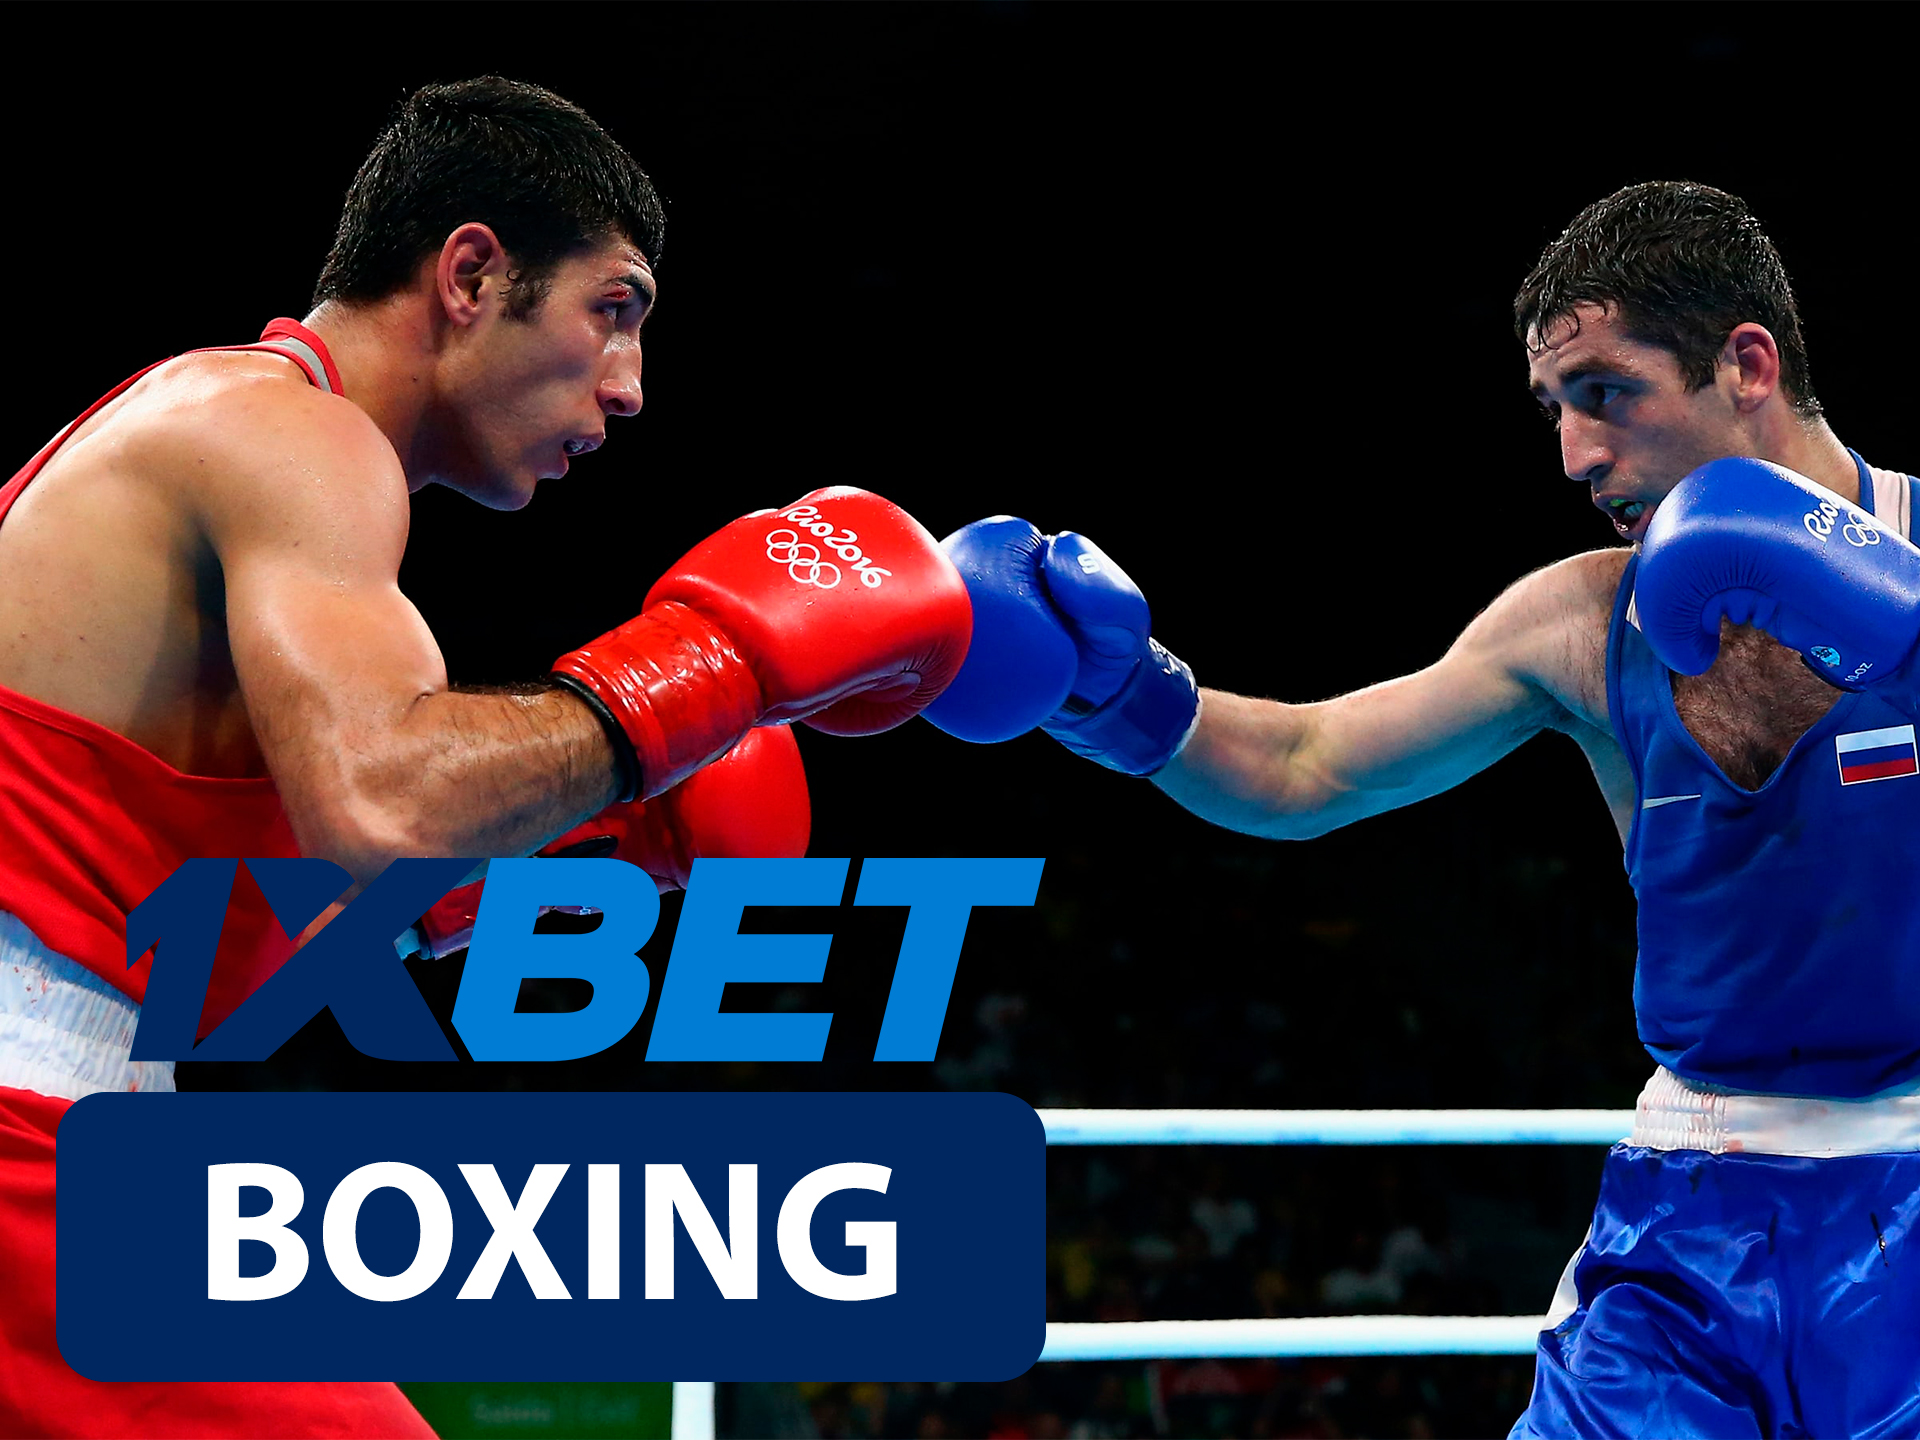 Start betting on boxing with 1xBet.